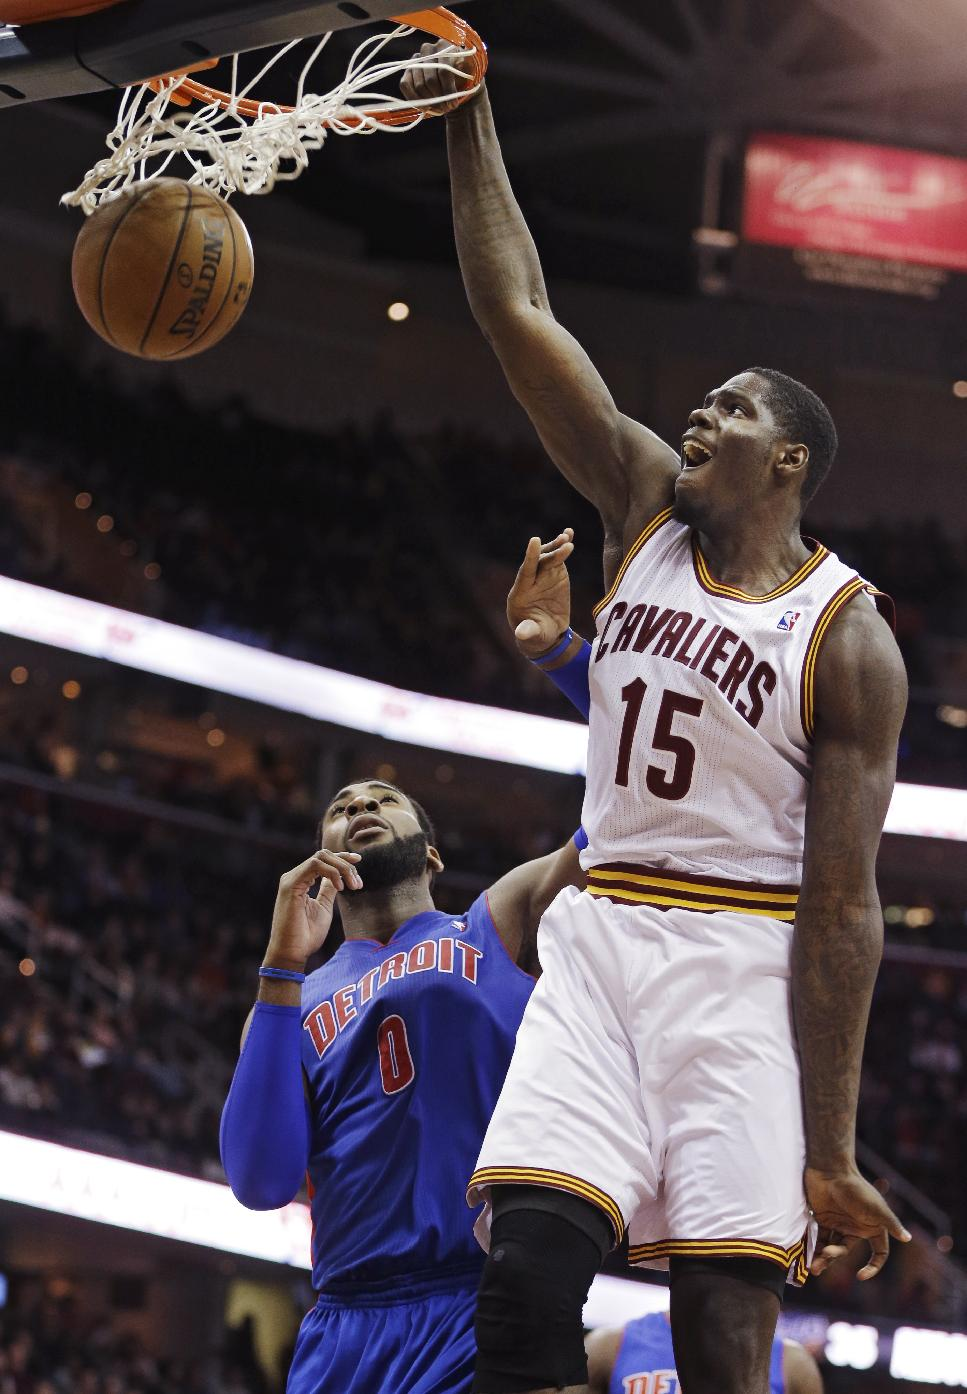 Cleveland Cavaliers' Anthony Bennett (15) dunks in front of Detroit Pistons' Andre Drummond (0) during the fourth quarter of an NBA basketball game Monday, Dec. 23, 2013, in Cleveland. The Pistons won 115-92